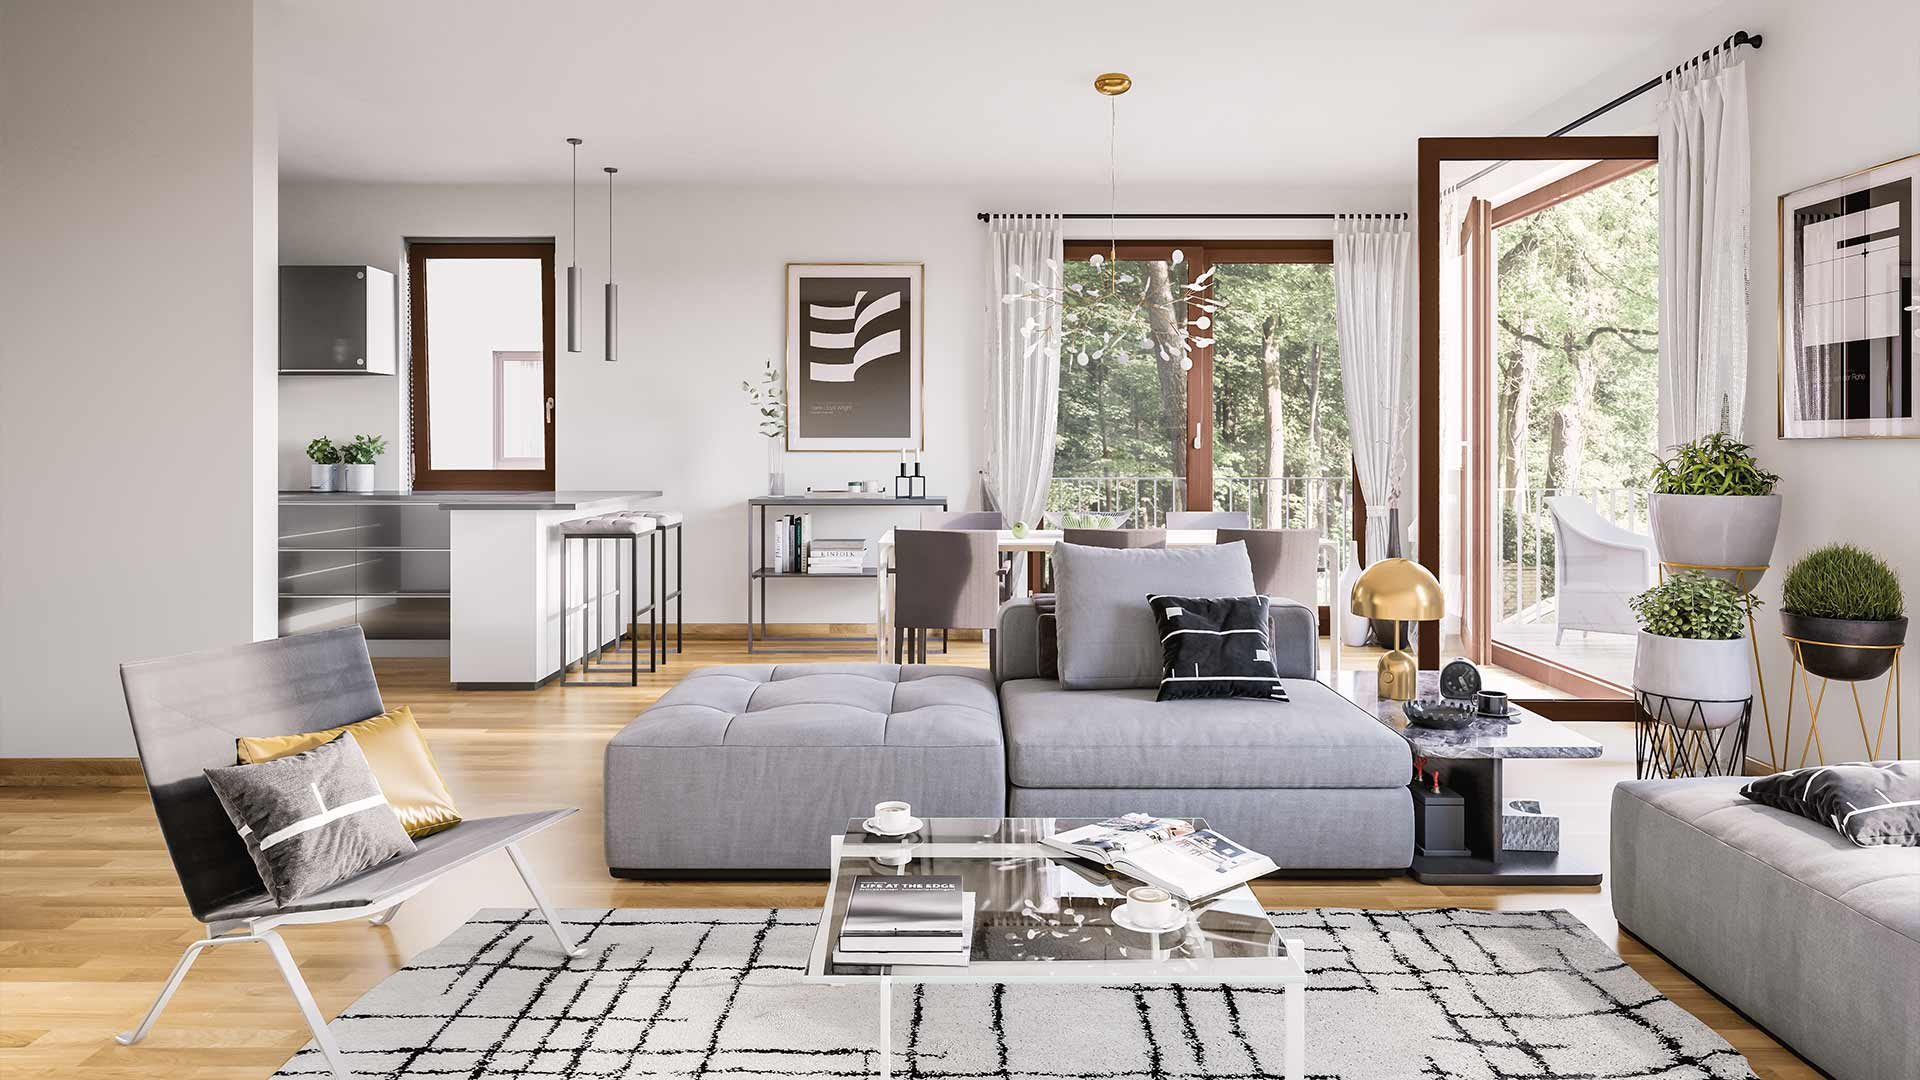 Open living space with floor-length windows and sophisticated furnishings